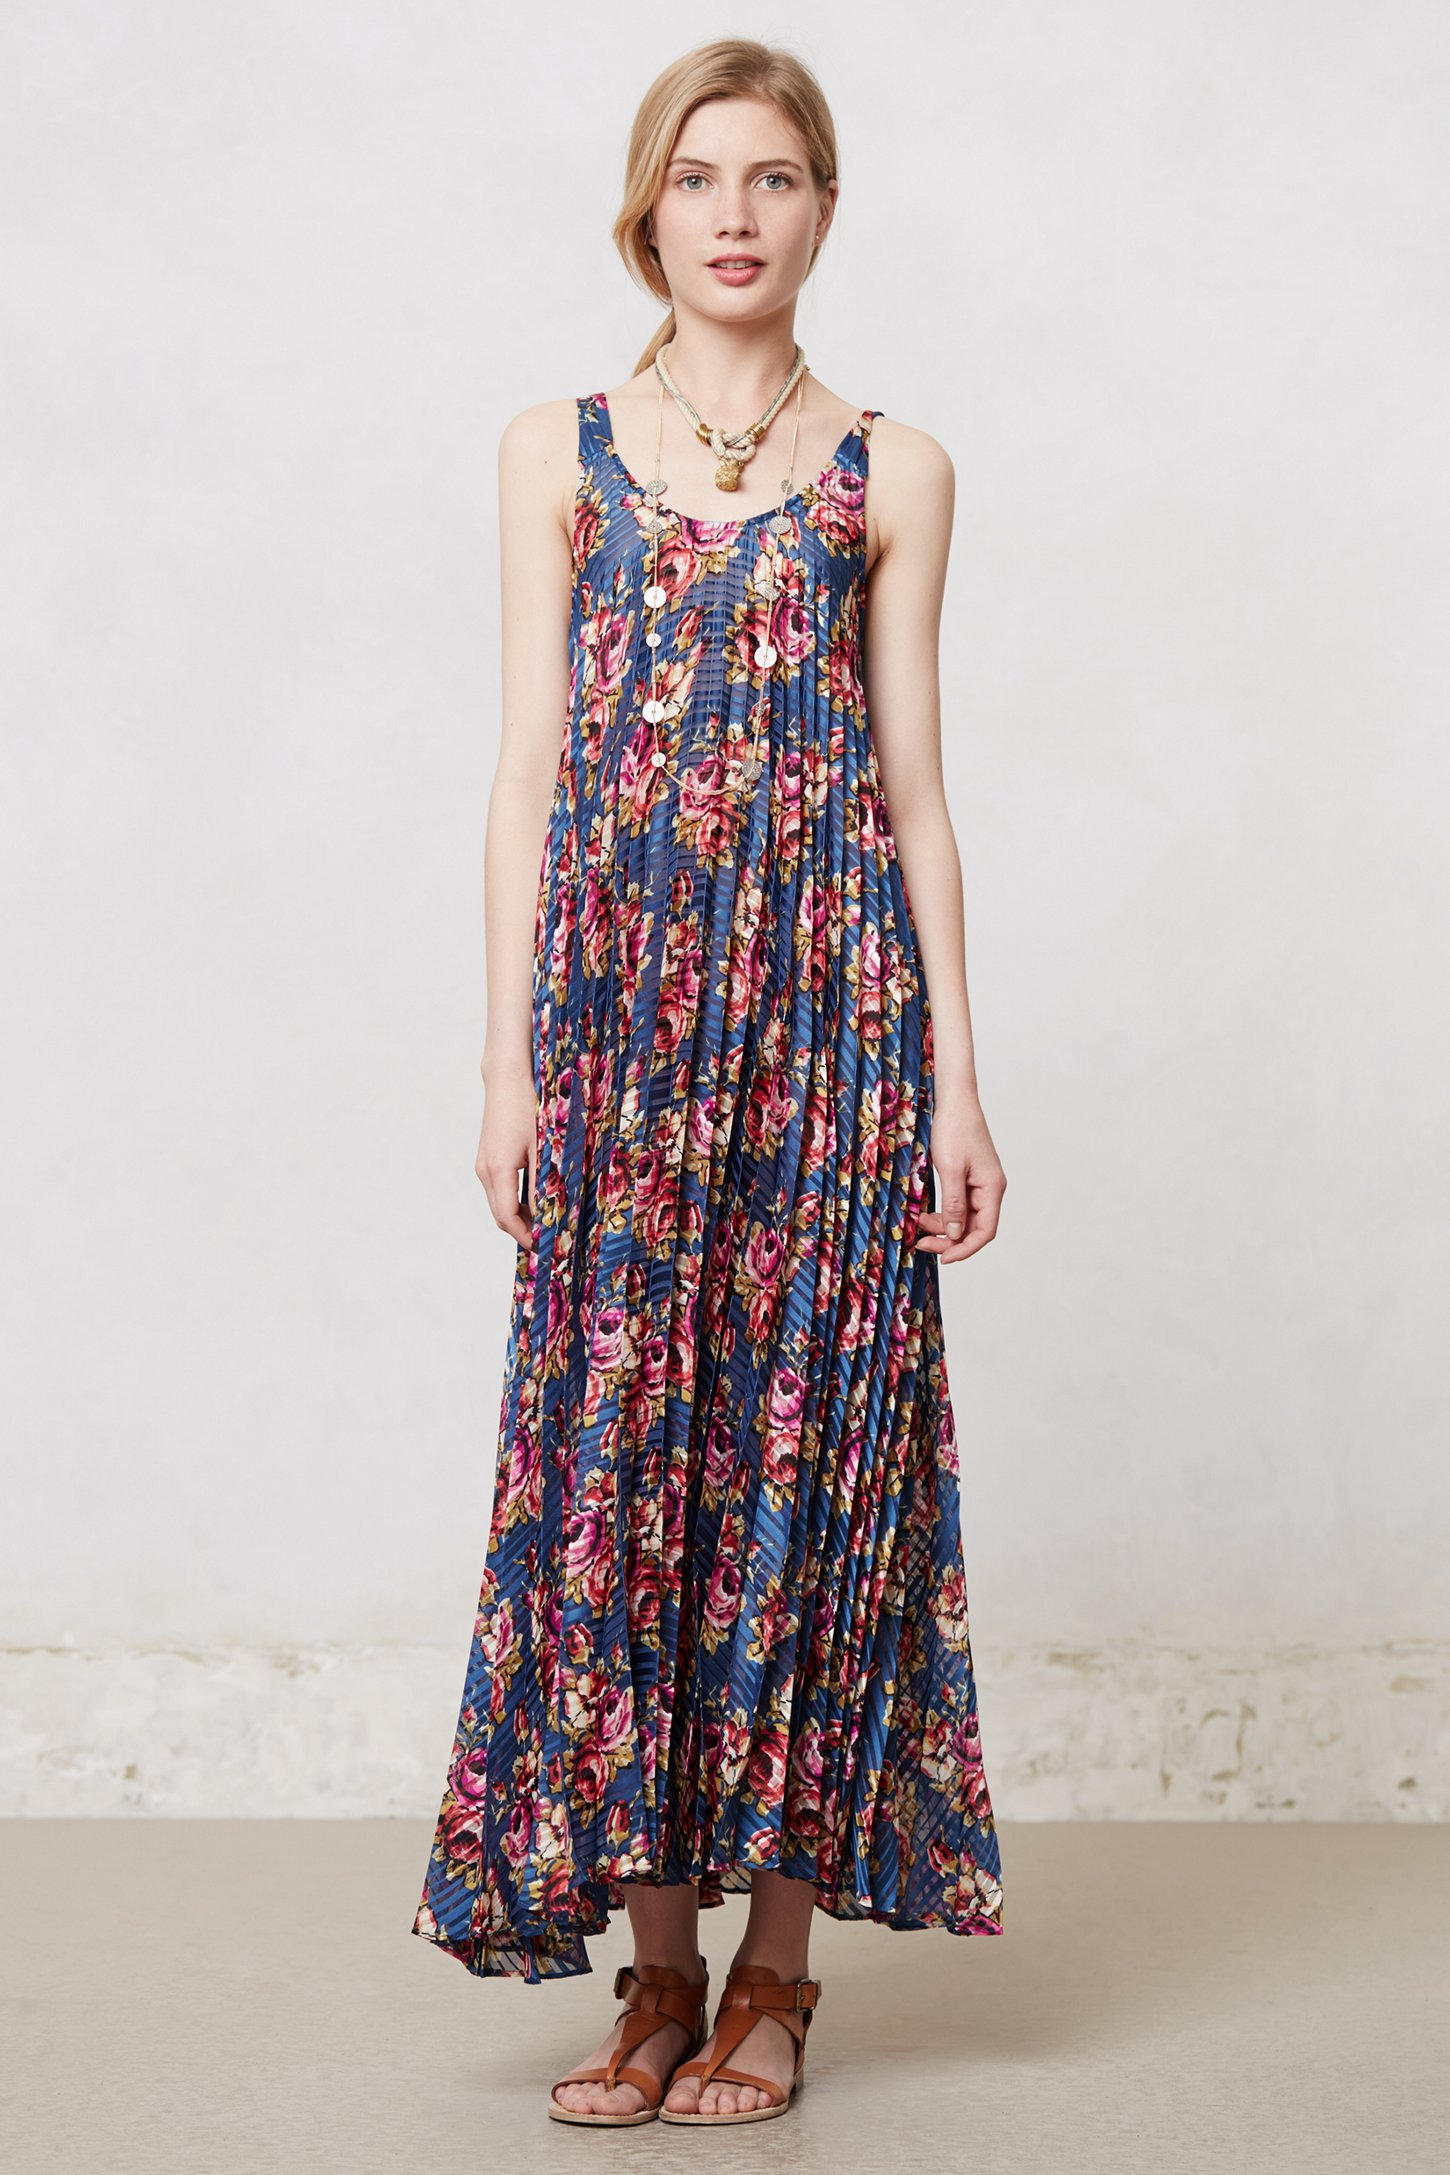 Authentic Cheap Price Fast Delivery Cheap Online Zimmermann pleated floral maxi dress 2018 Clearance Official Site tiPgBJi64